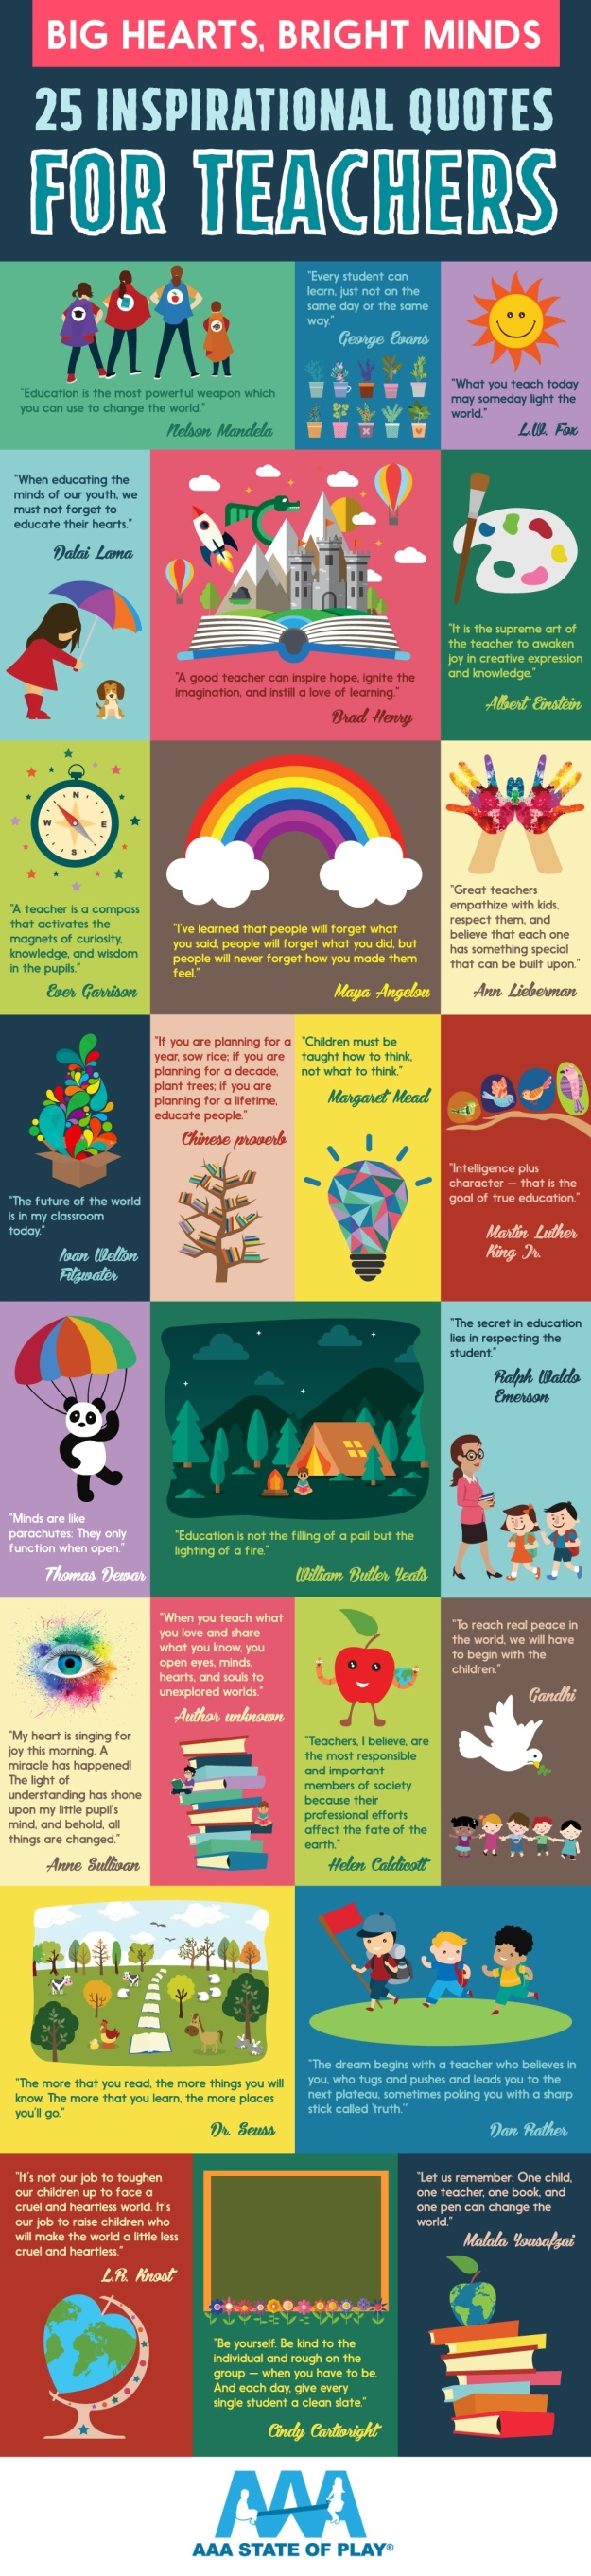 25 Inspirational Quotes for Teachers